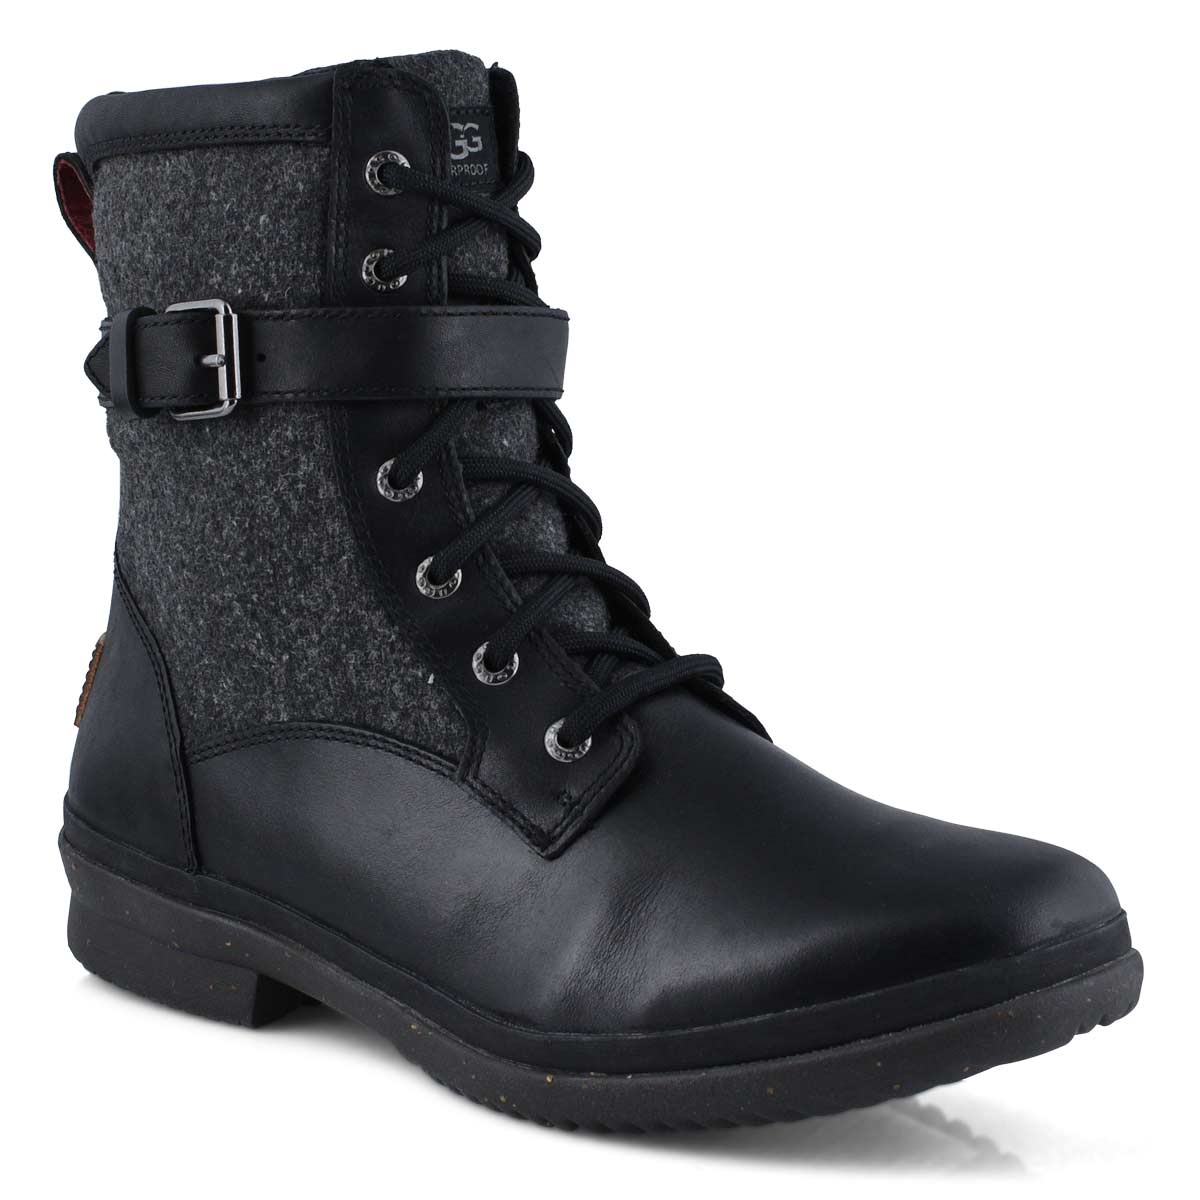 Women's KESEY blk leather waterproof lace up boots